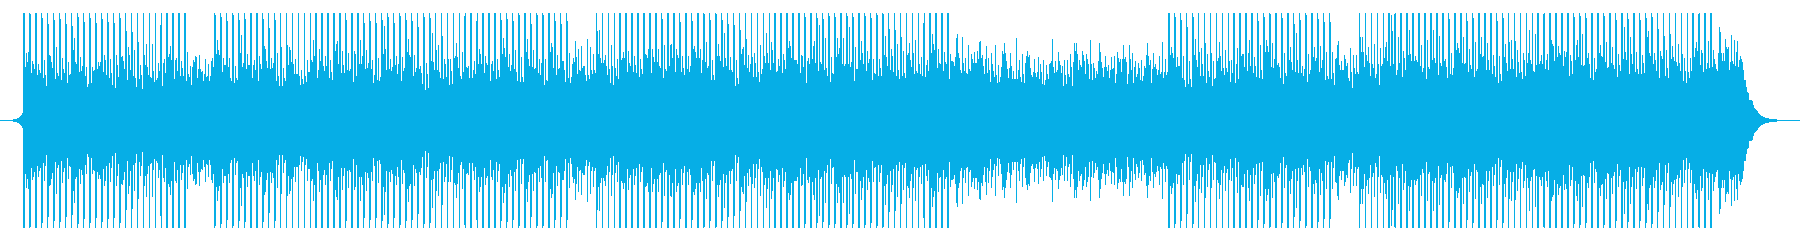 Corporate Event's reproduced waveform